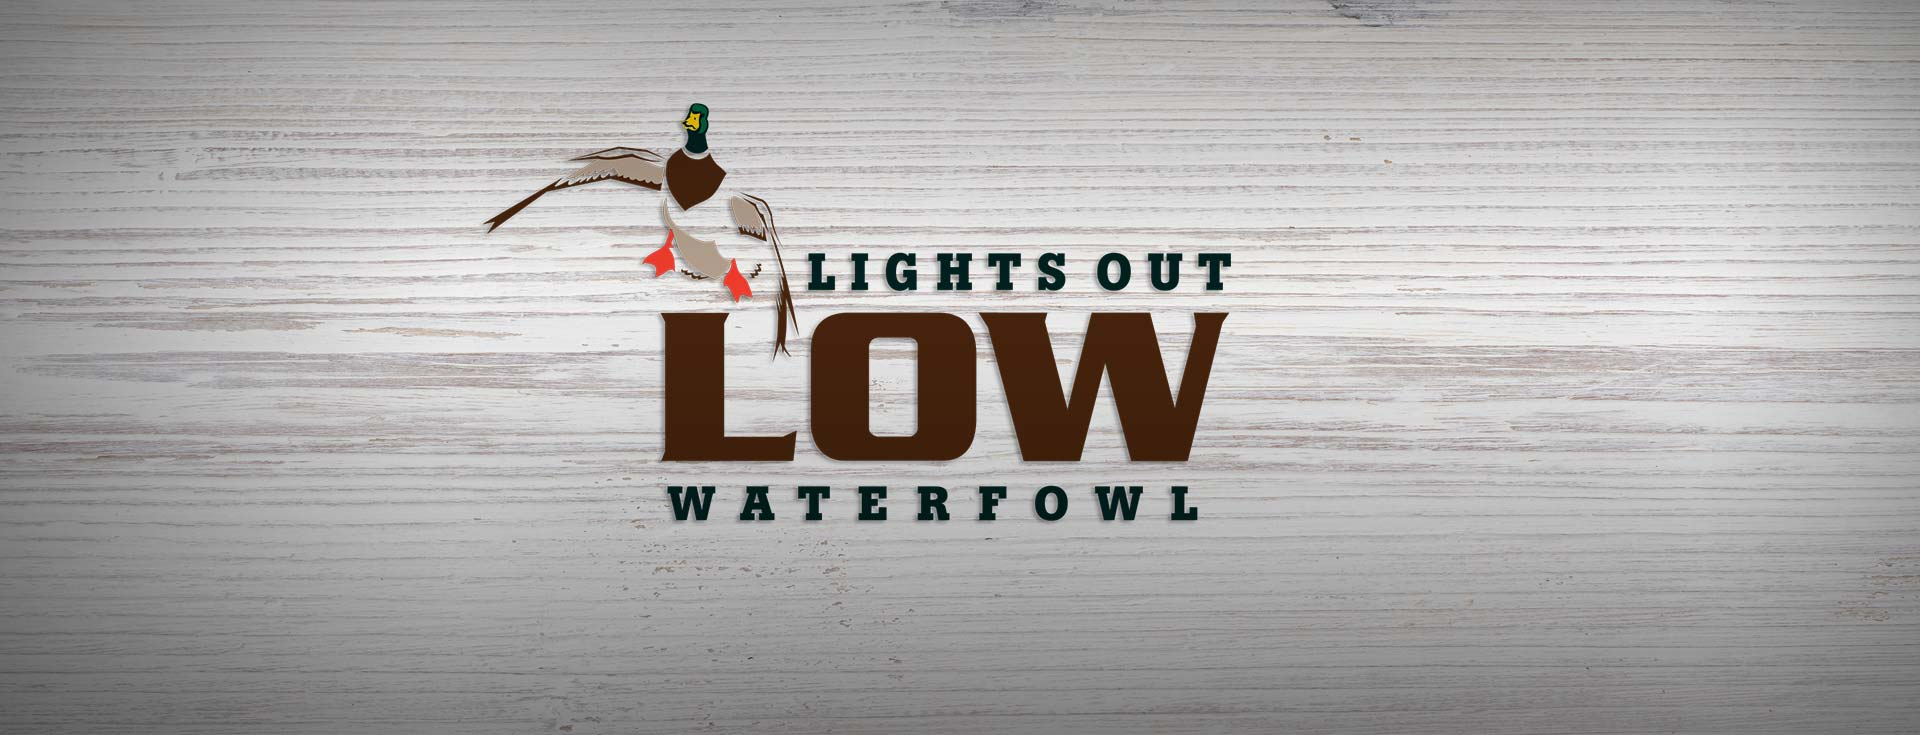 Link to Lights Out Waterfowl